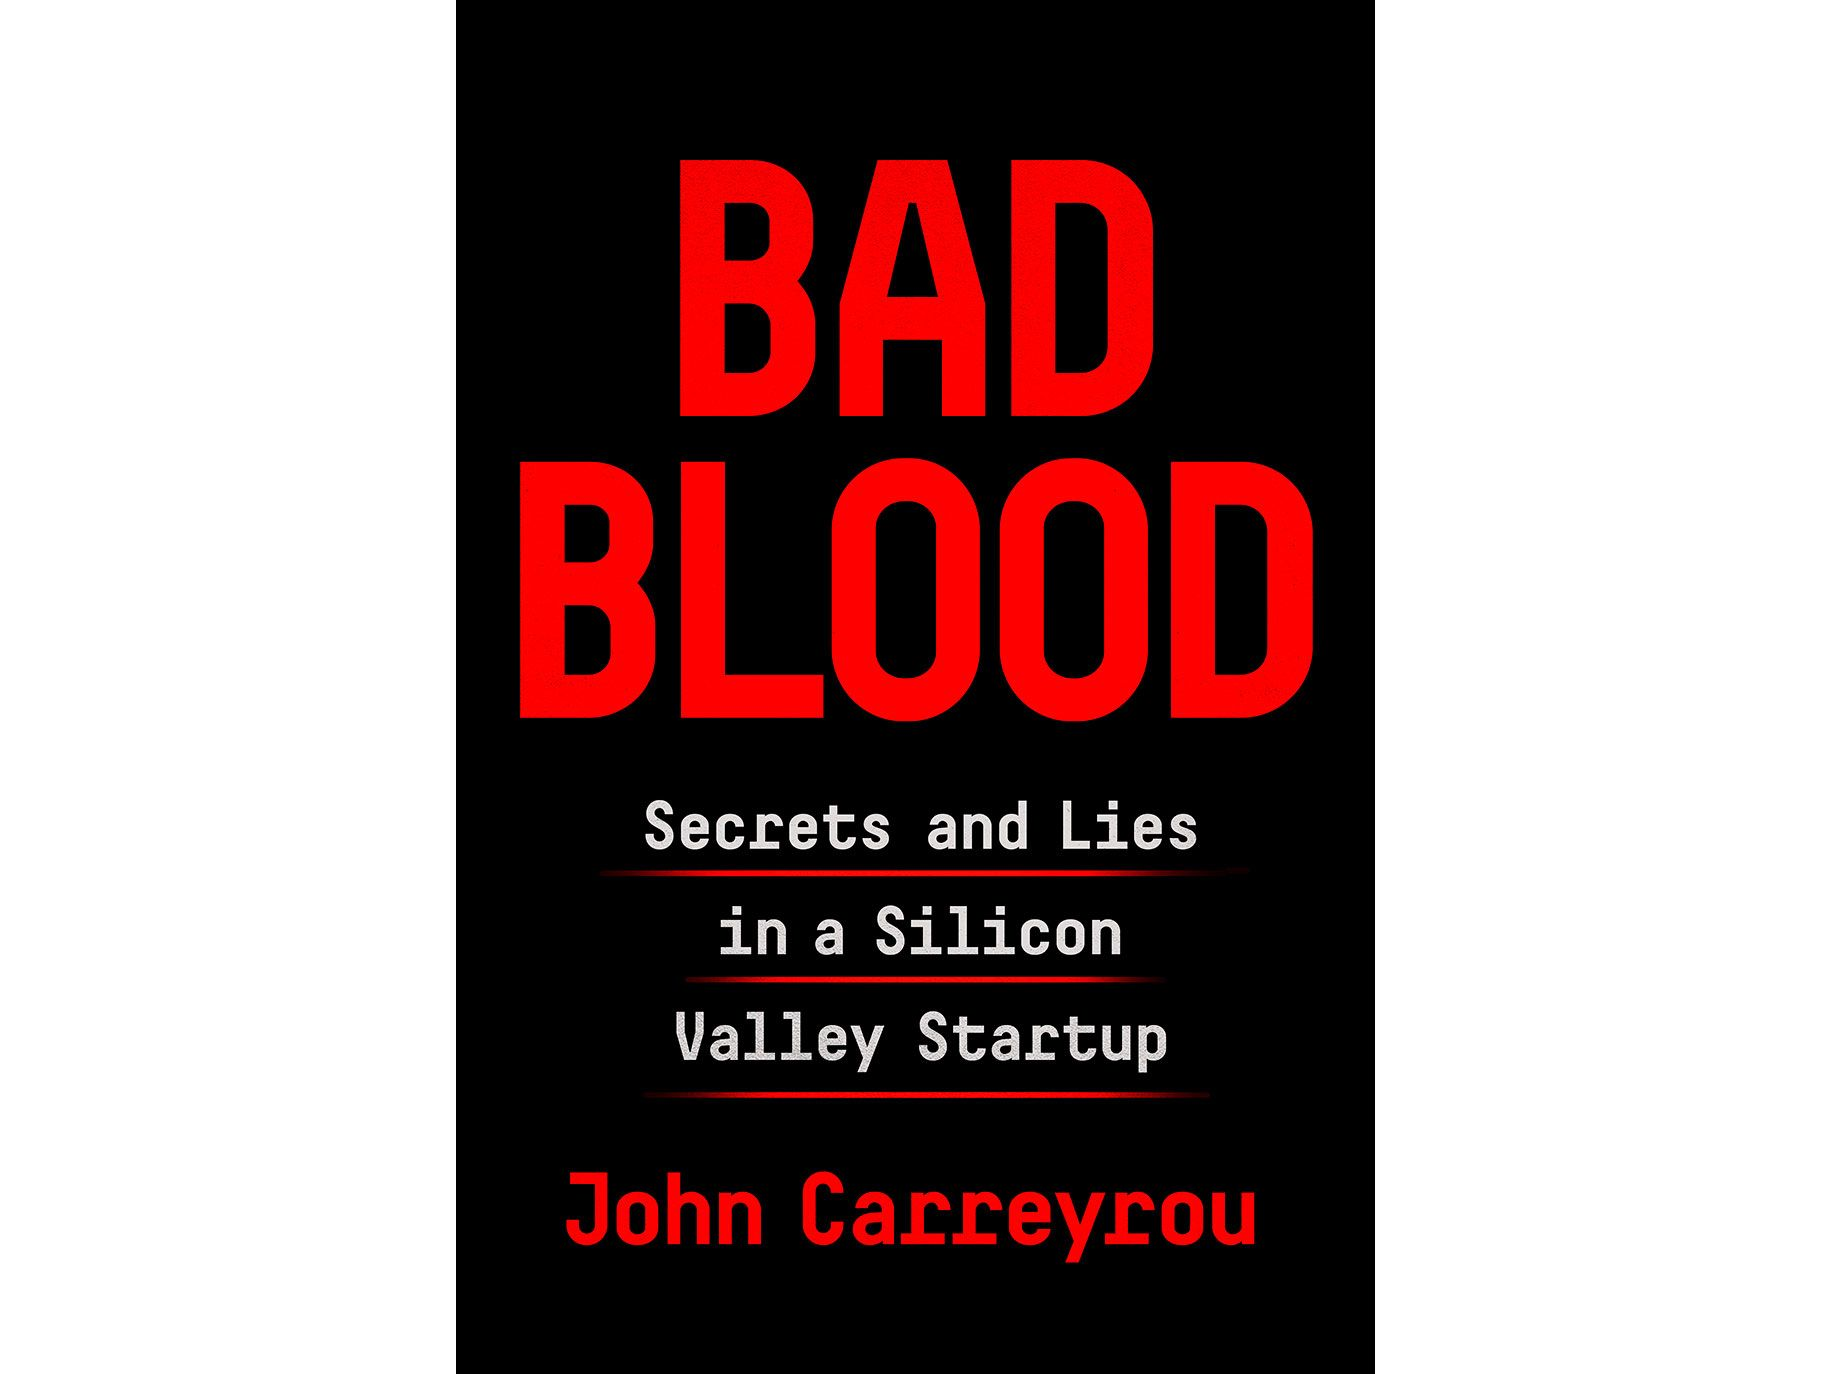 """Bad Blood: Secrets and Lies in a Silicon Valley Startup,"" by John Carreyrou, 352 pages, Knopf (2018), $27.95."